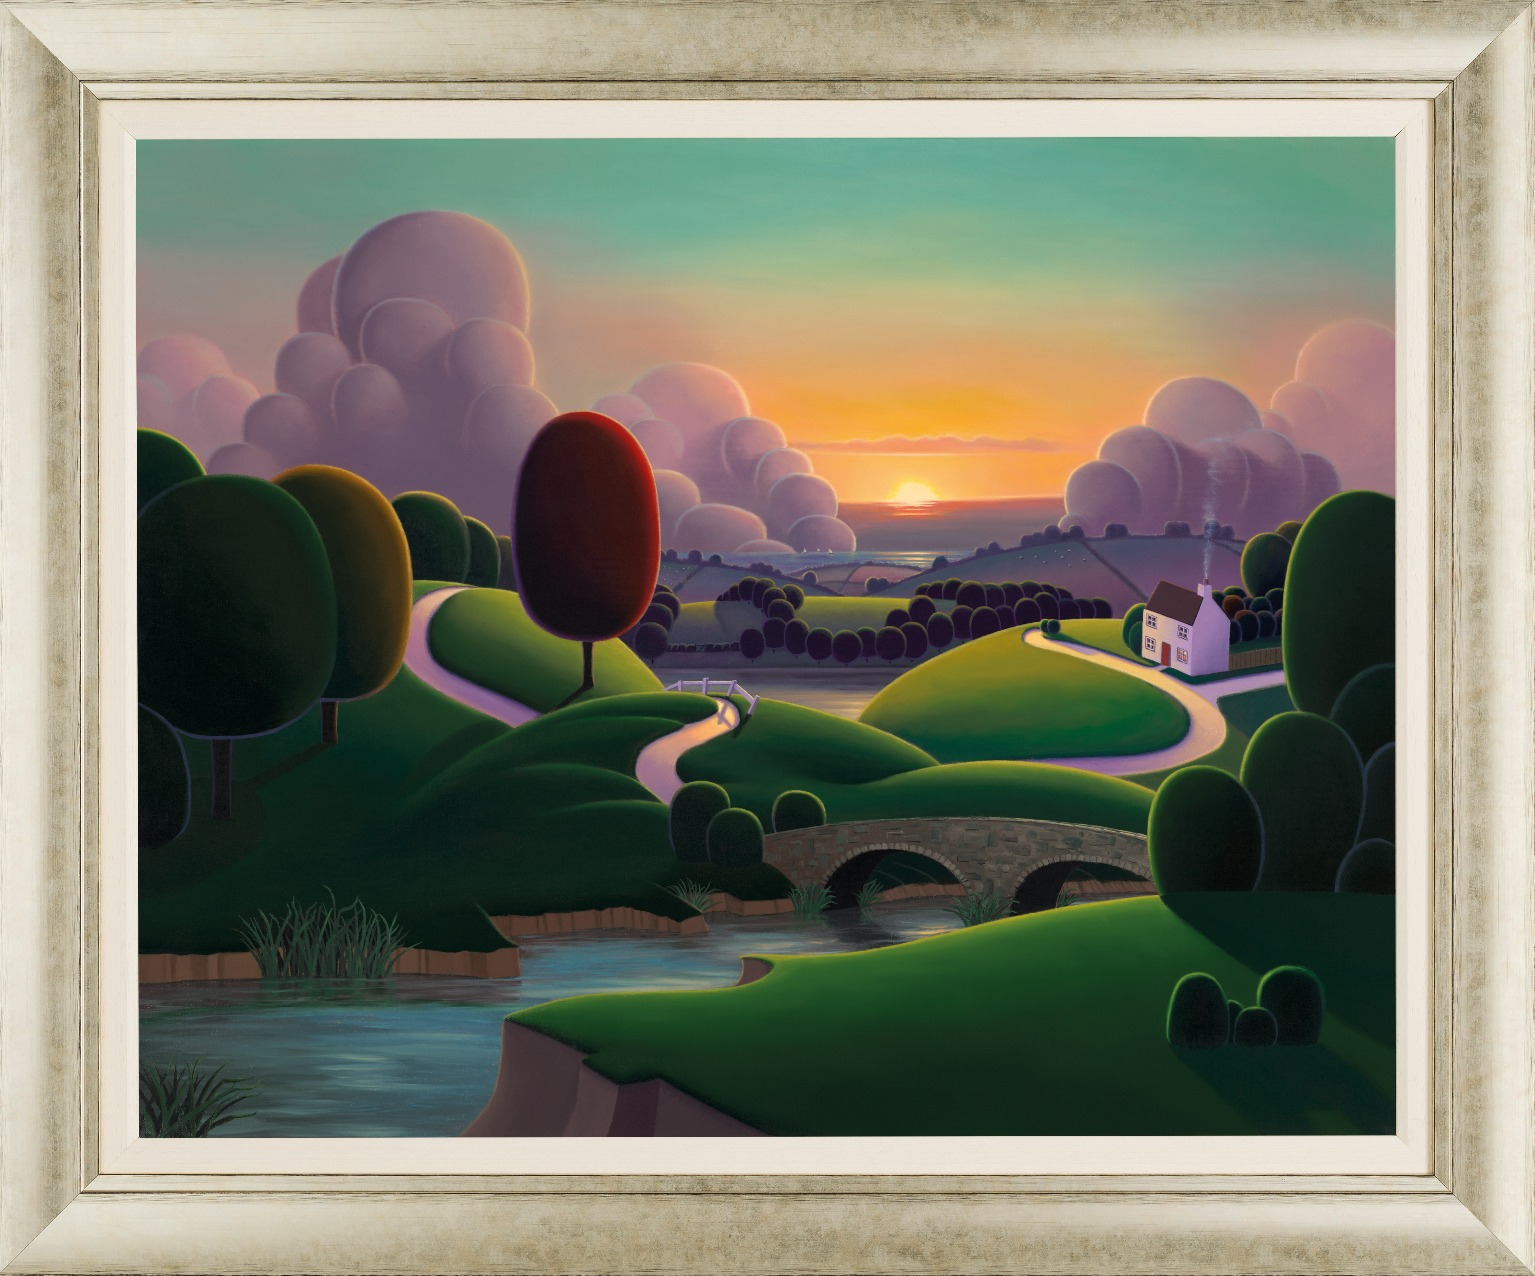 When the River meets the Sea by Paul Corfield, Landscape